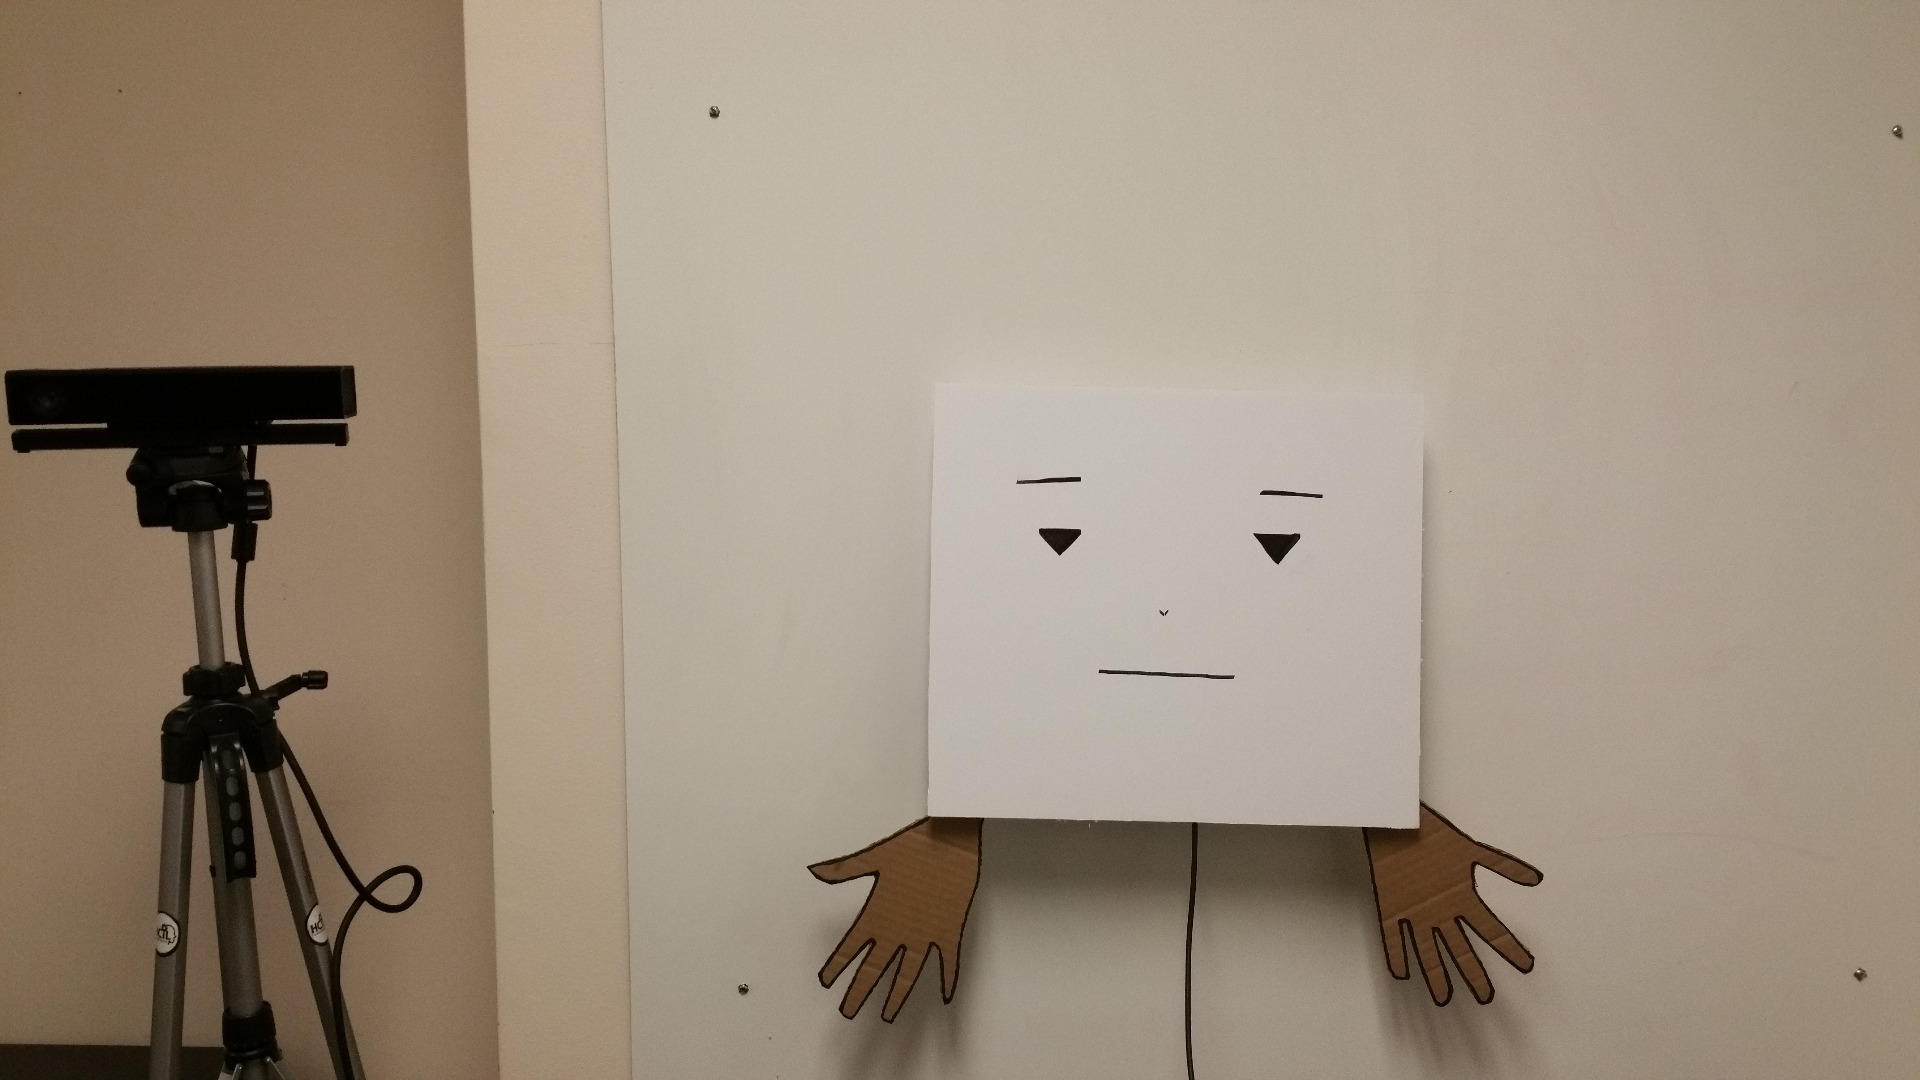 Picture of Marvin: Wall-Mounted Bot That Gestures